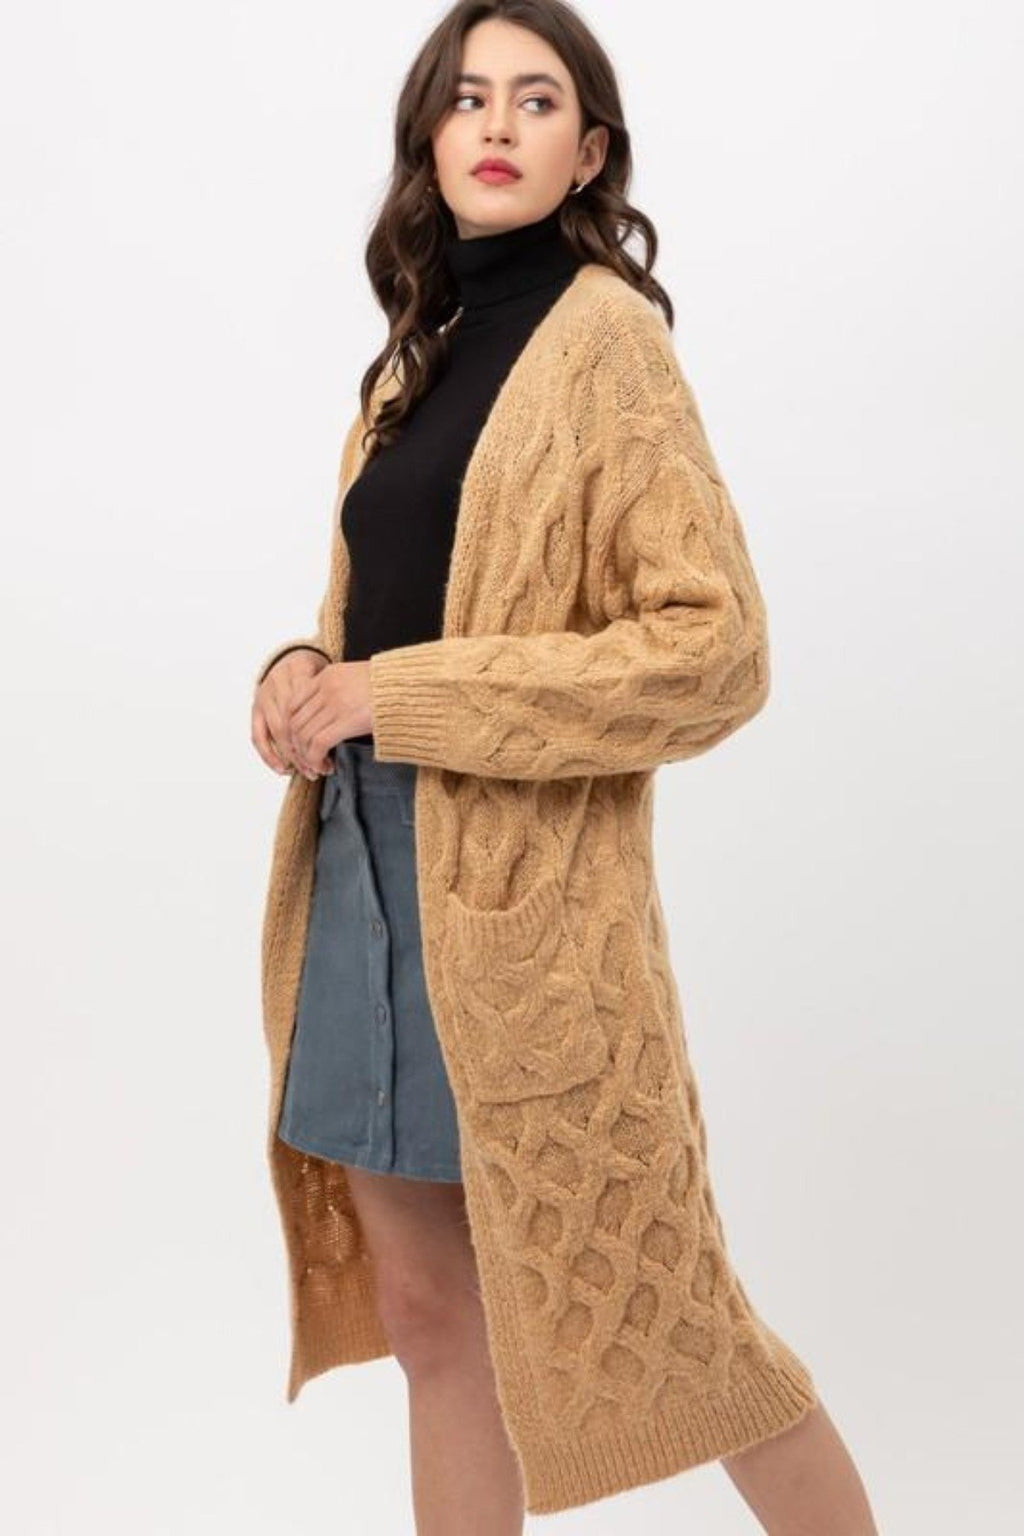 SWEET HONEY KNITTED TEXTURED POCKETED CARDIGAN - [jayden_p]